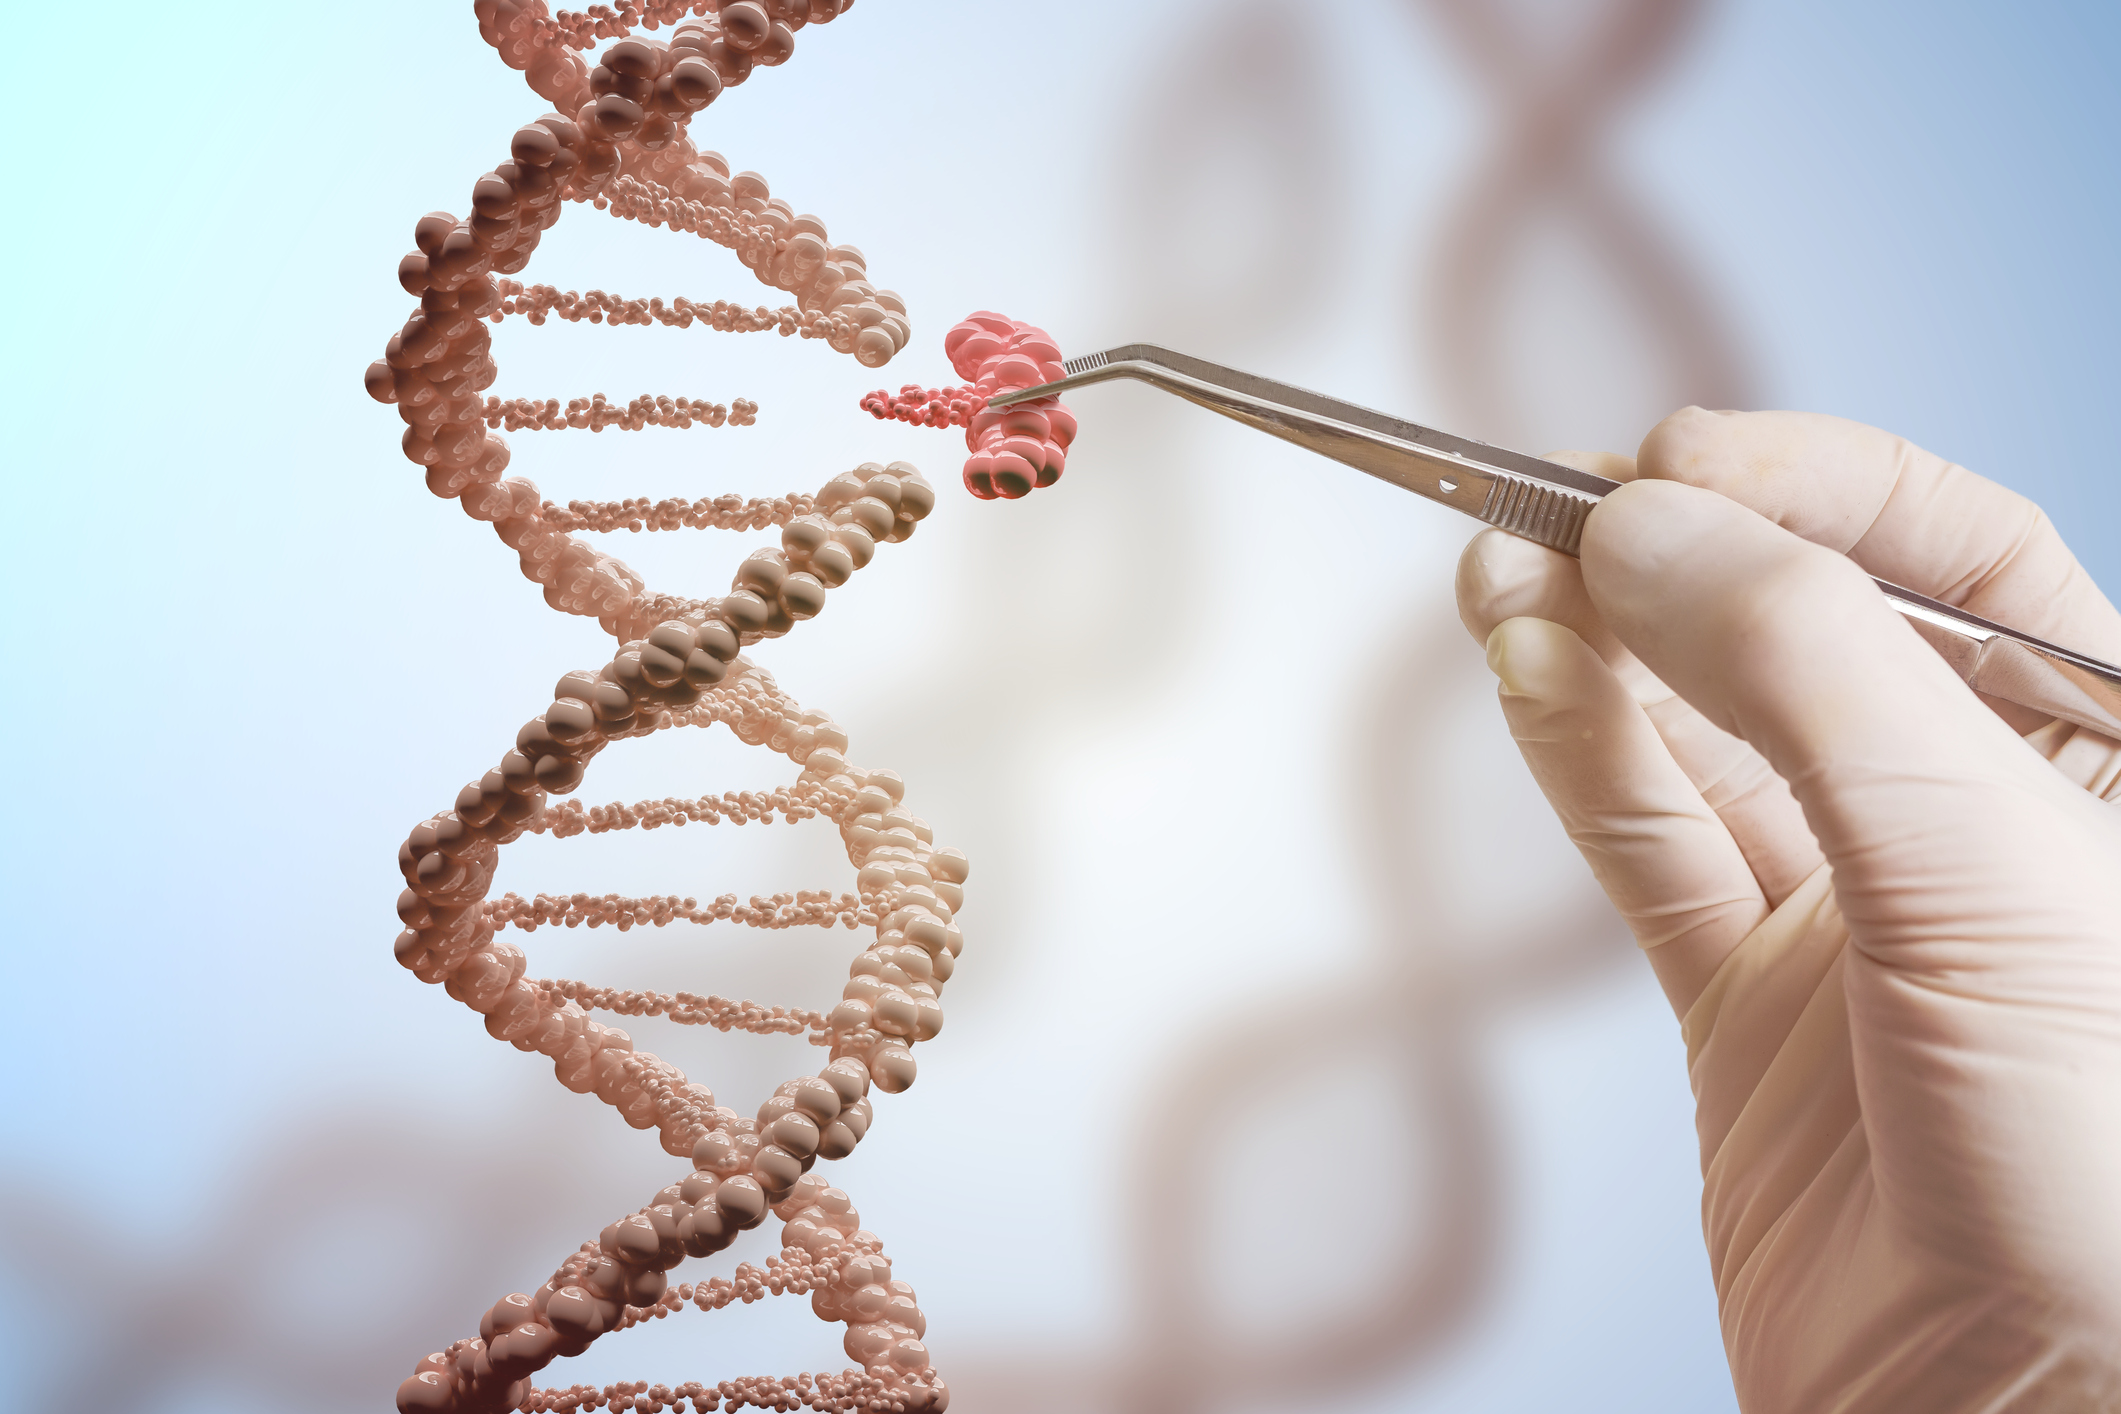 Japan prepares to allow genome editing in human embryos